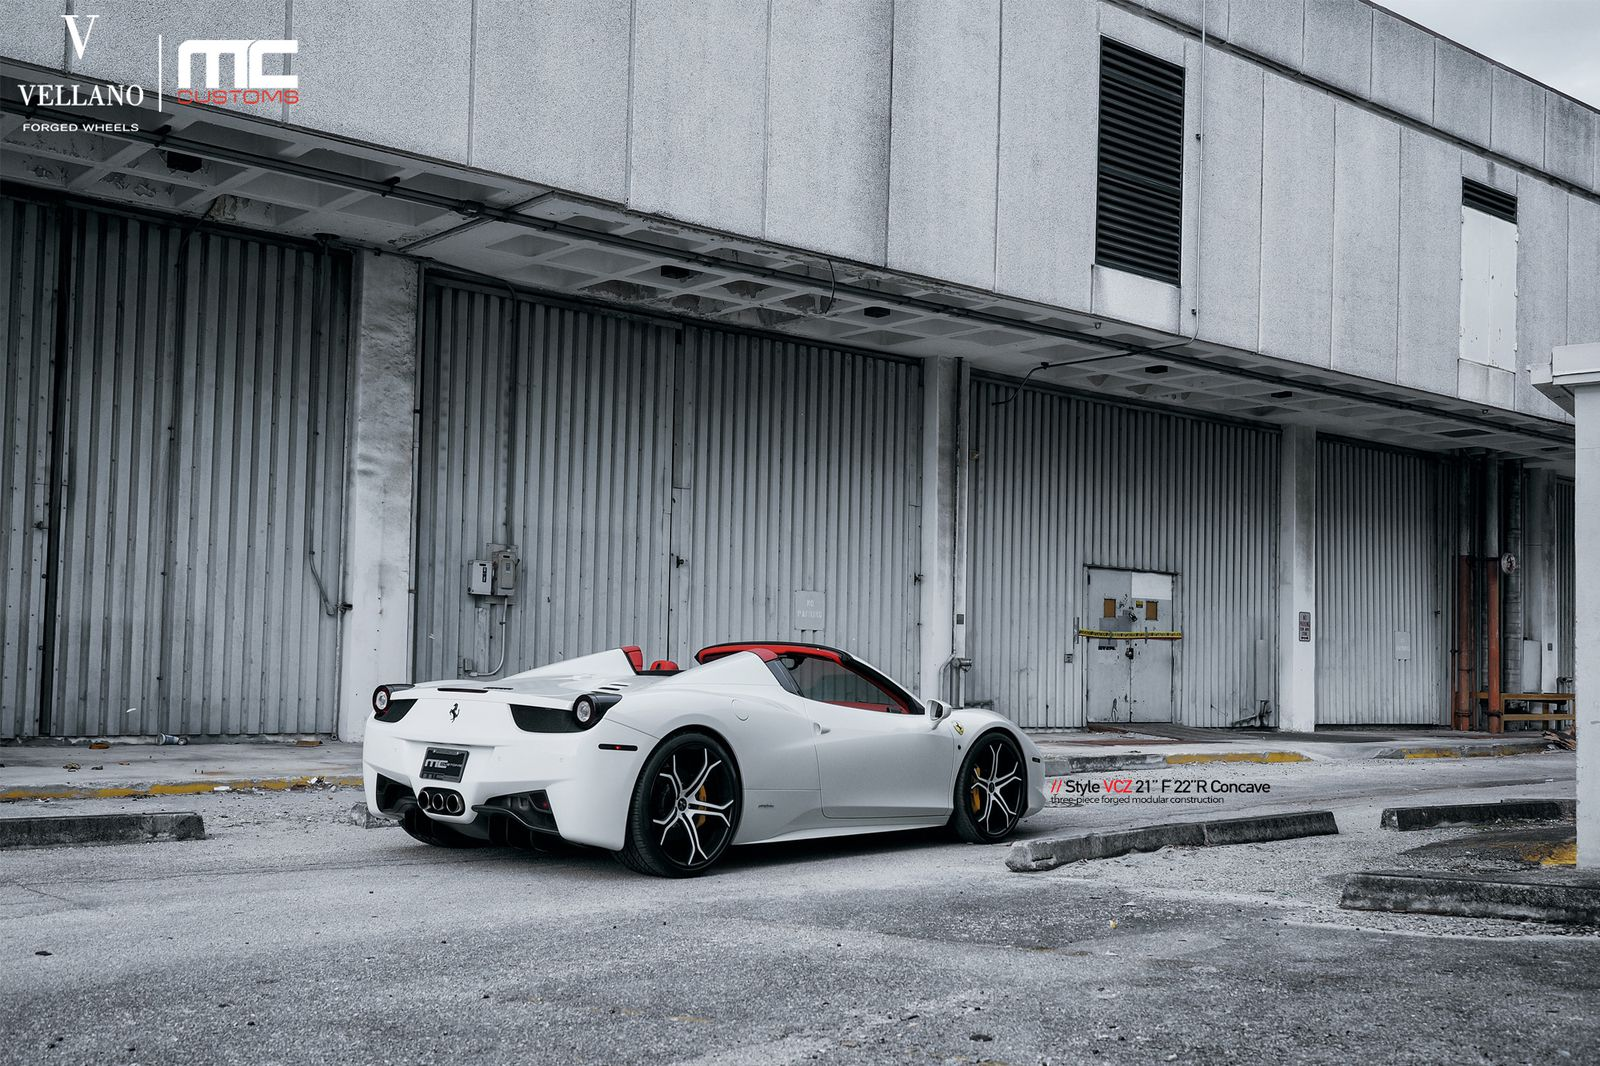 http://idata.over-blog.com/4/15/62/69/Preparations-et-Tuning-vol-6/2014-Vellano-Wheels---Ferrari-458-Spider-VCZ-21-F2-copie-1.jpg